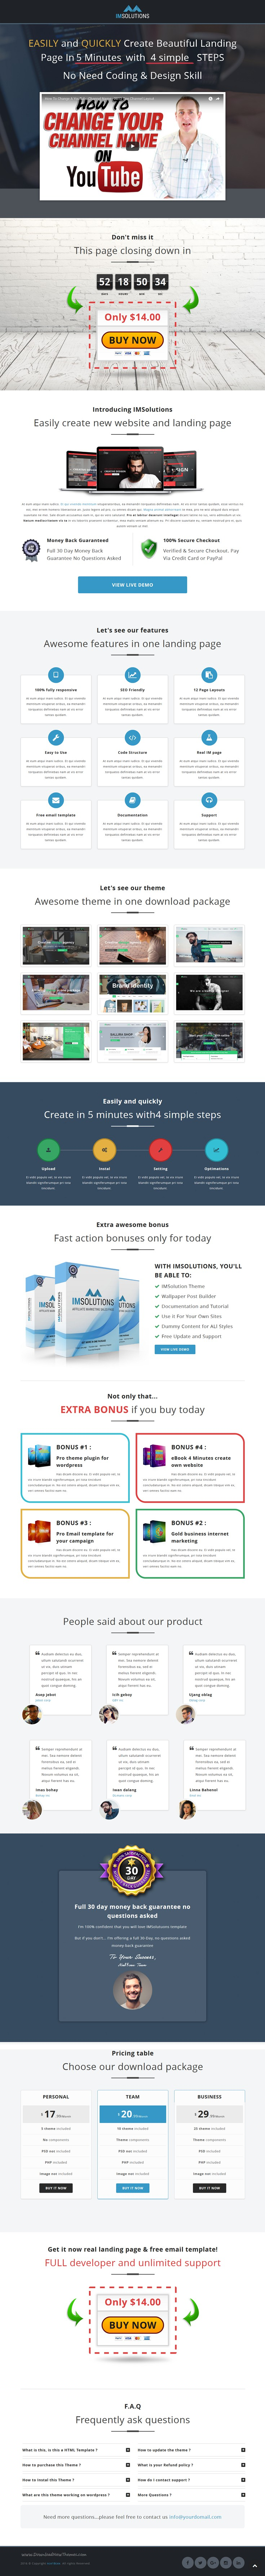 Imsolutions Sales Page For Affiliate Marketing Affiliate Marketing